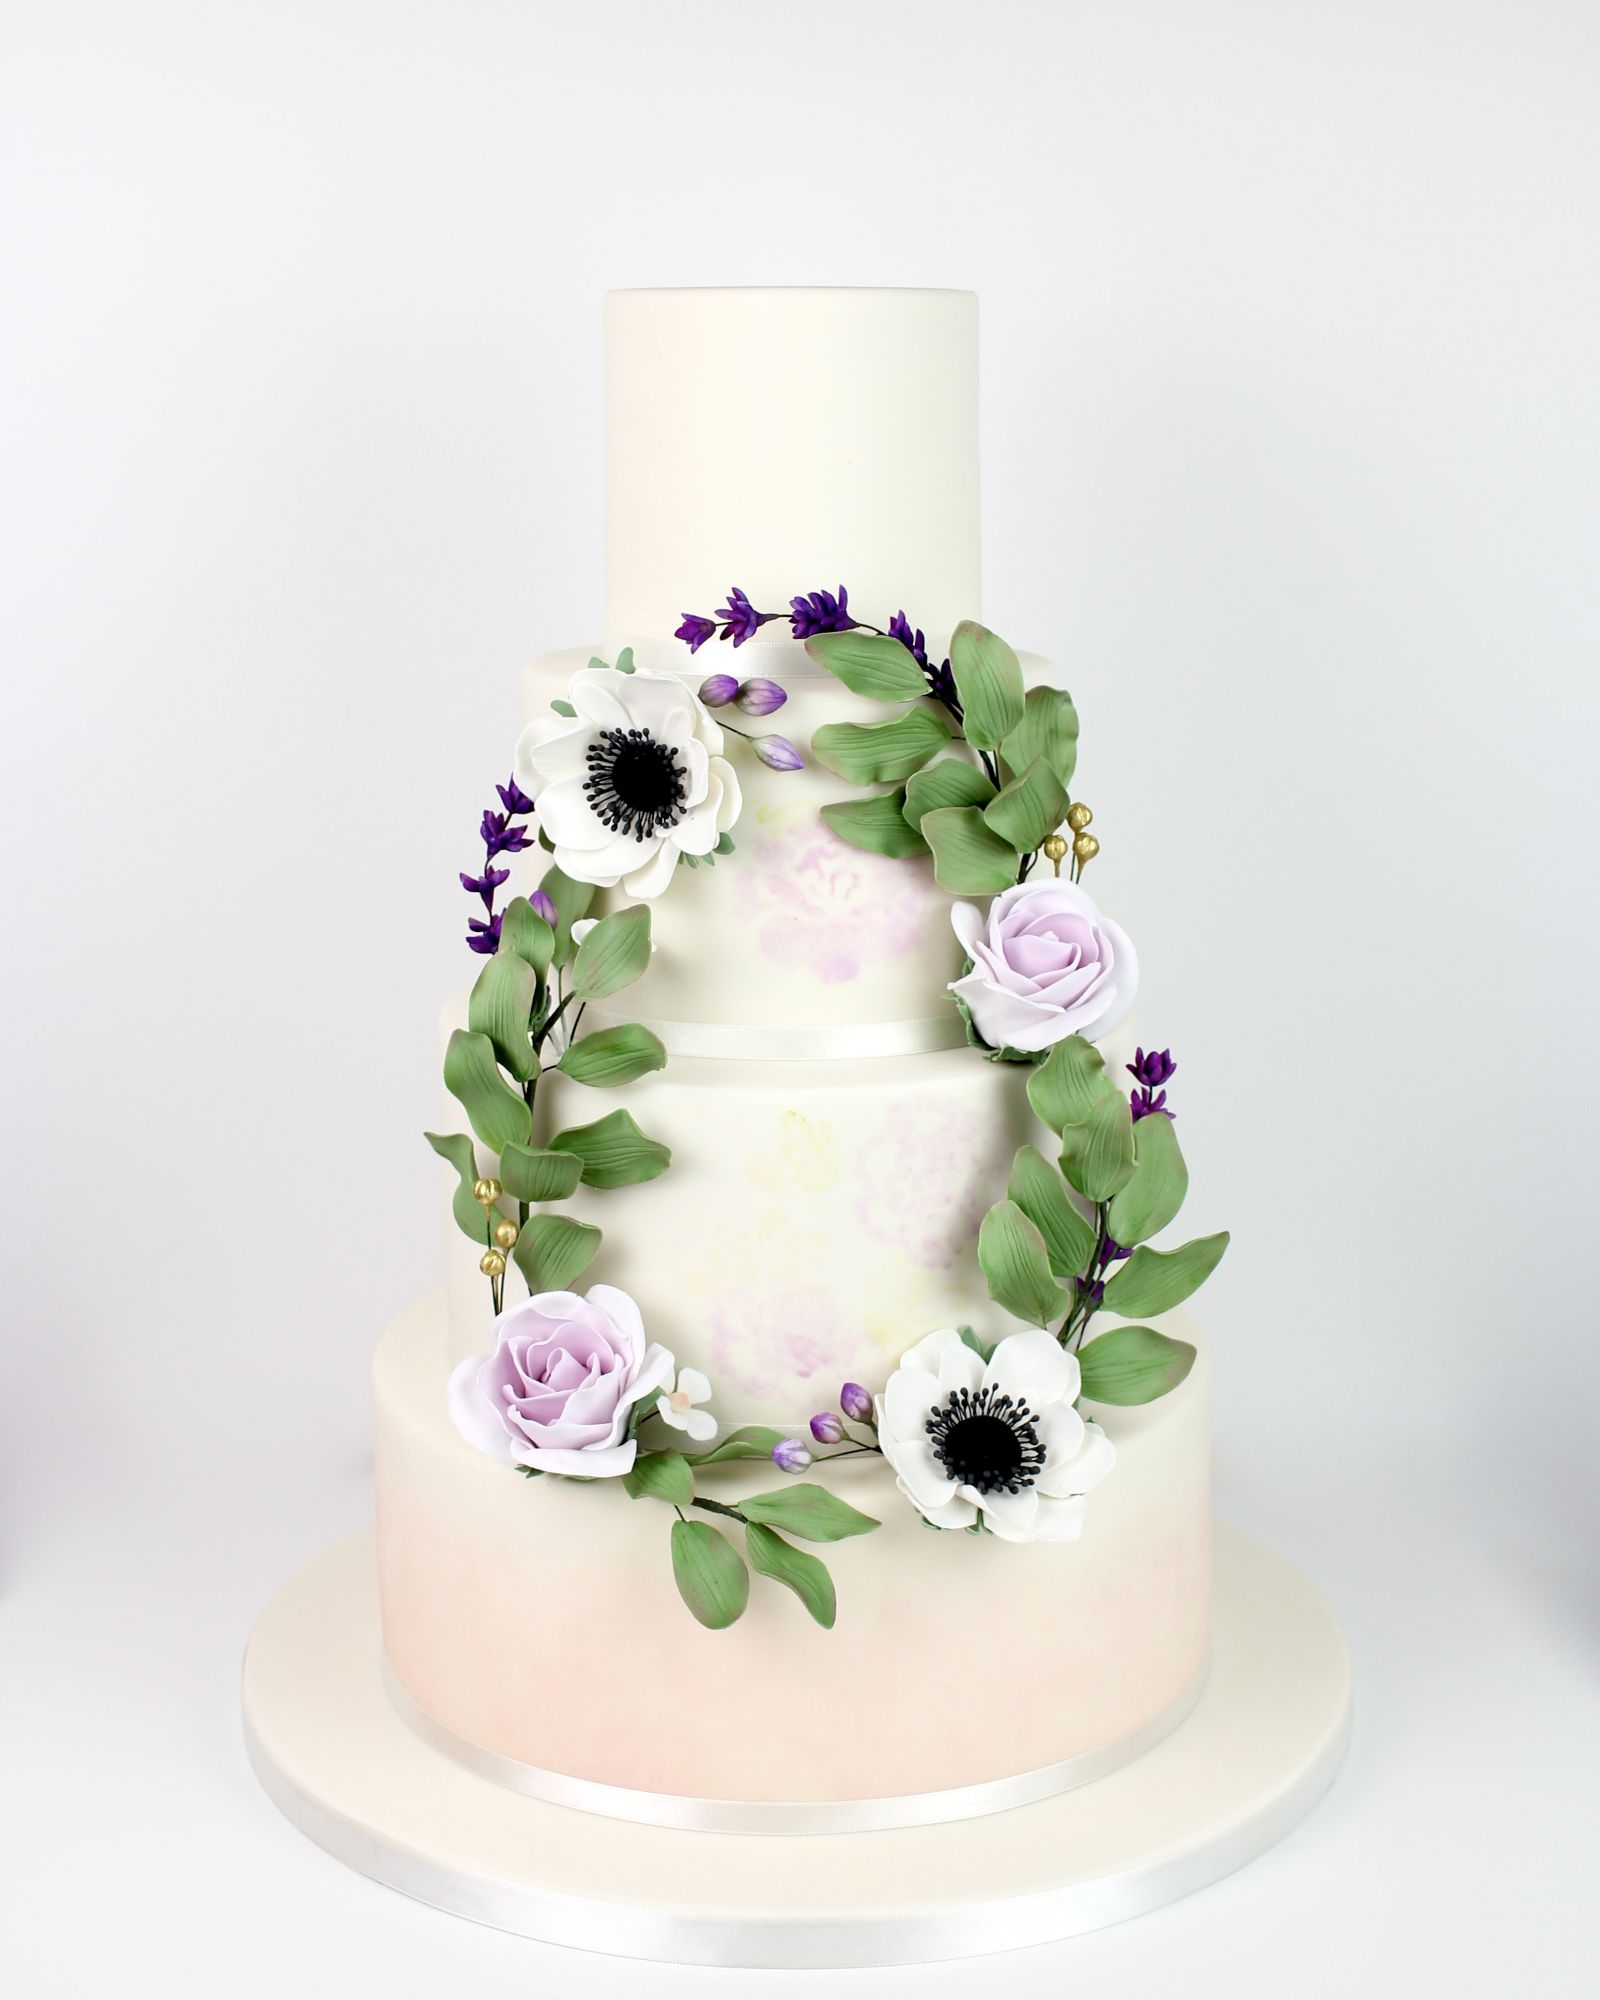 Watercolour flowers and bottom tier hand painted with floral wreath with roses, lavender and anemones, sugar flower garland